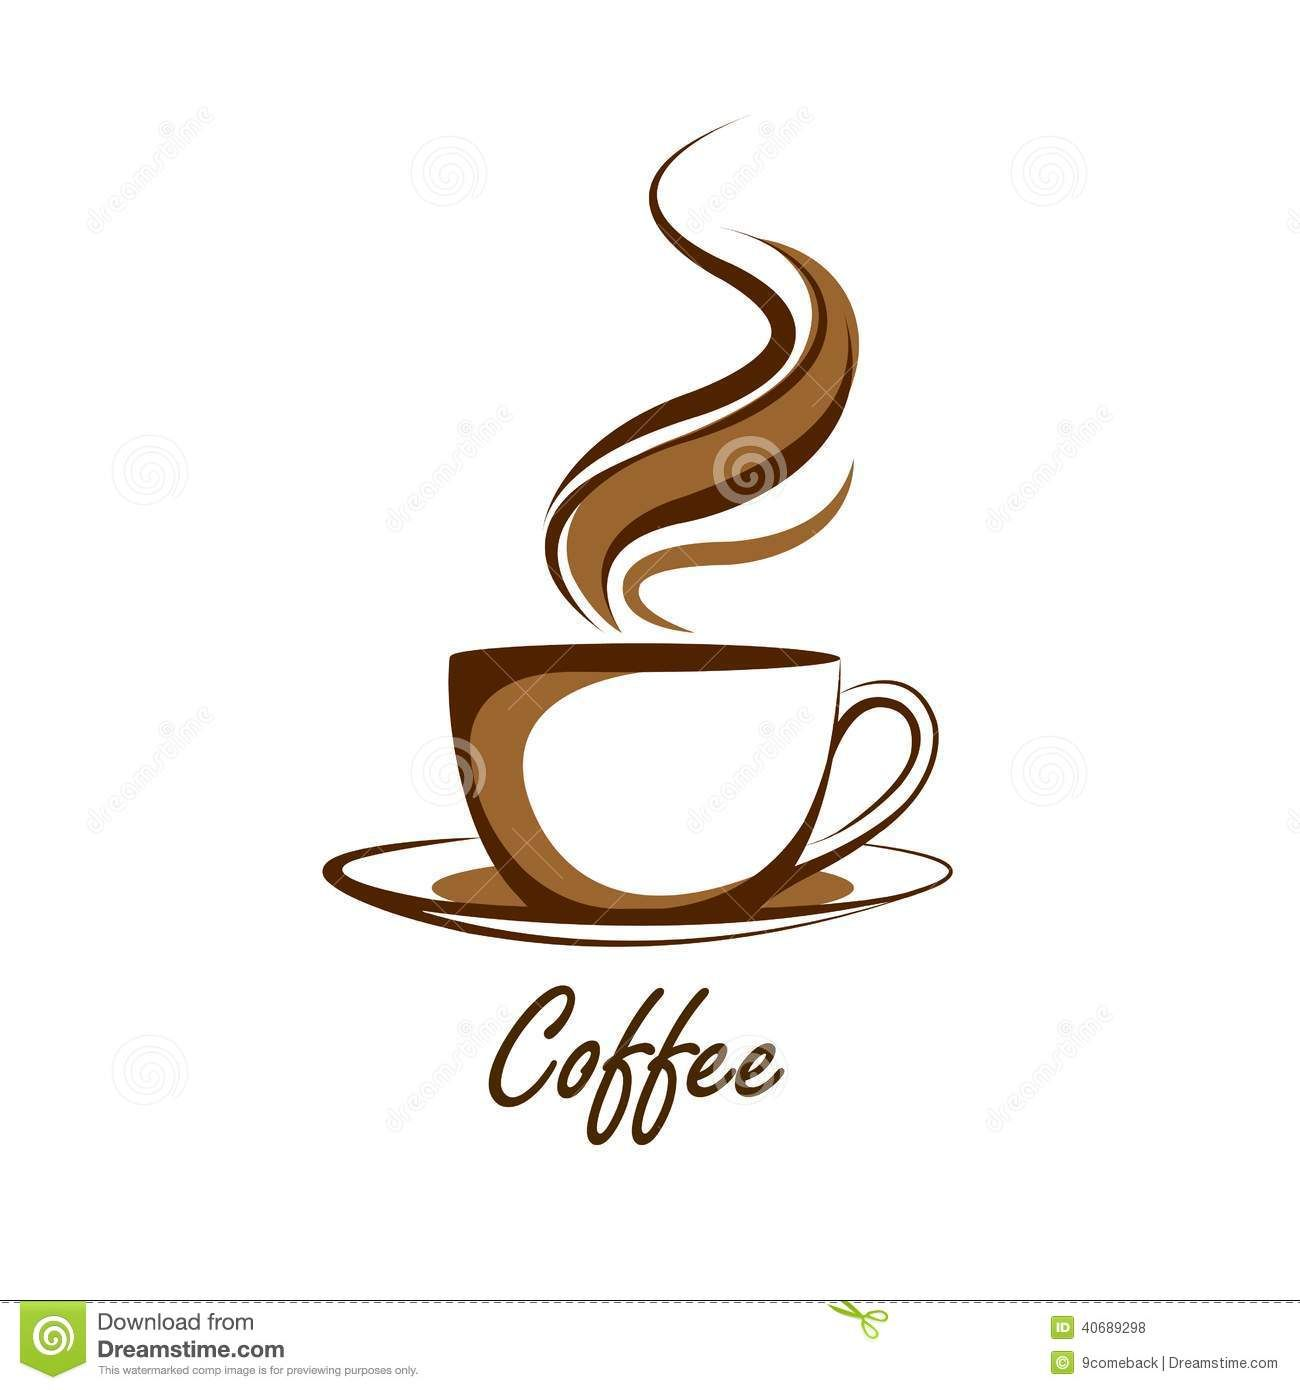 Coffee Cup Vector - Download From Over 57 Million High Quality ...